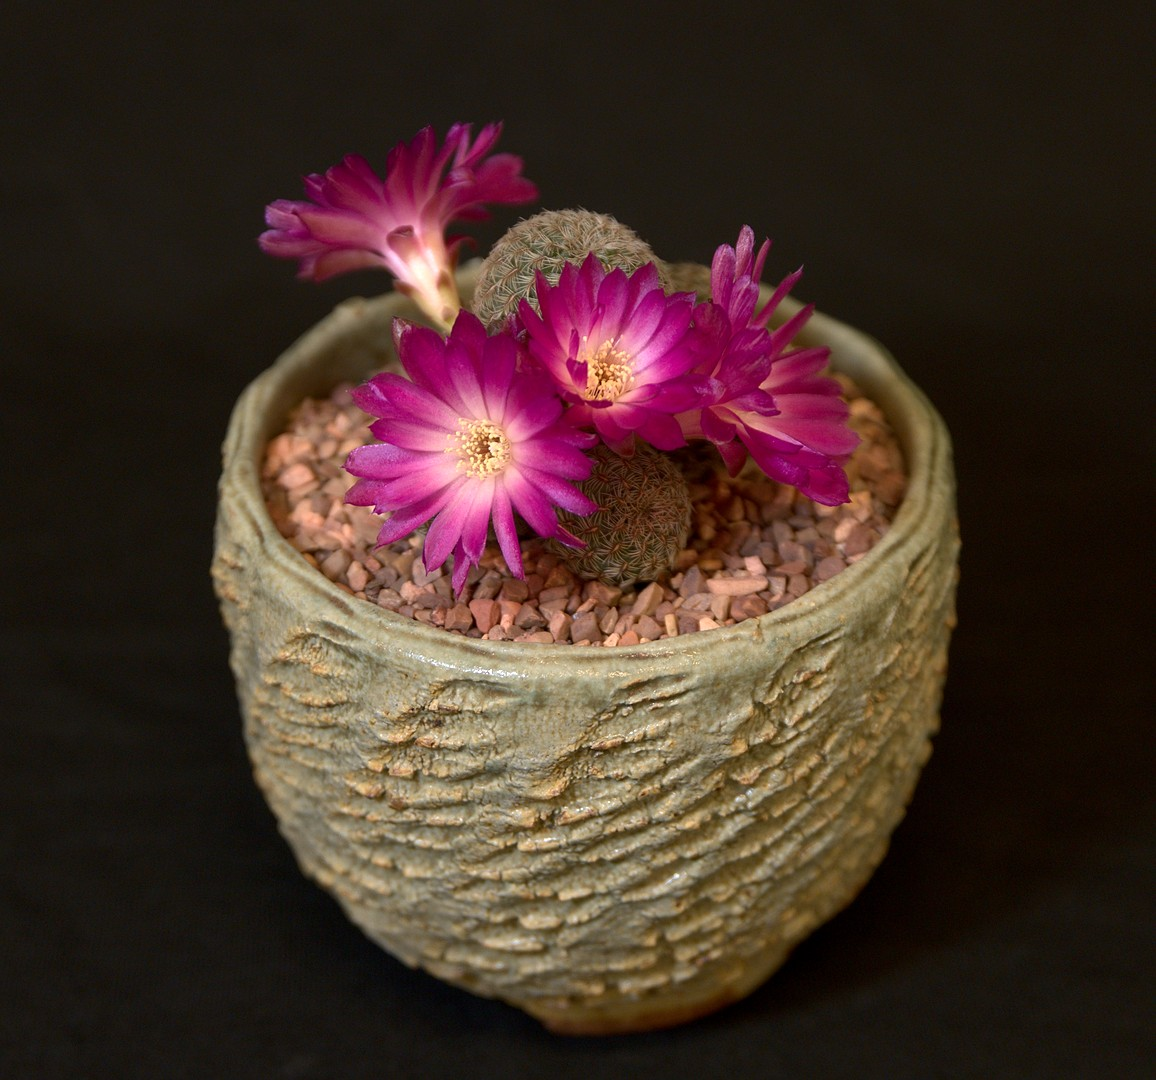 SCCSS 2019 June - Winner Intermediate Cactus - Sally Fasteau - Sulcorebutia steinbachii